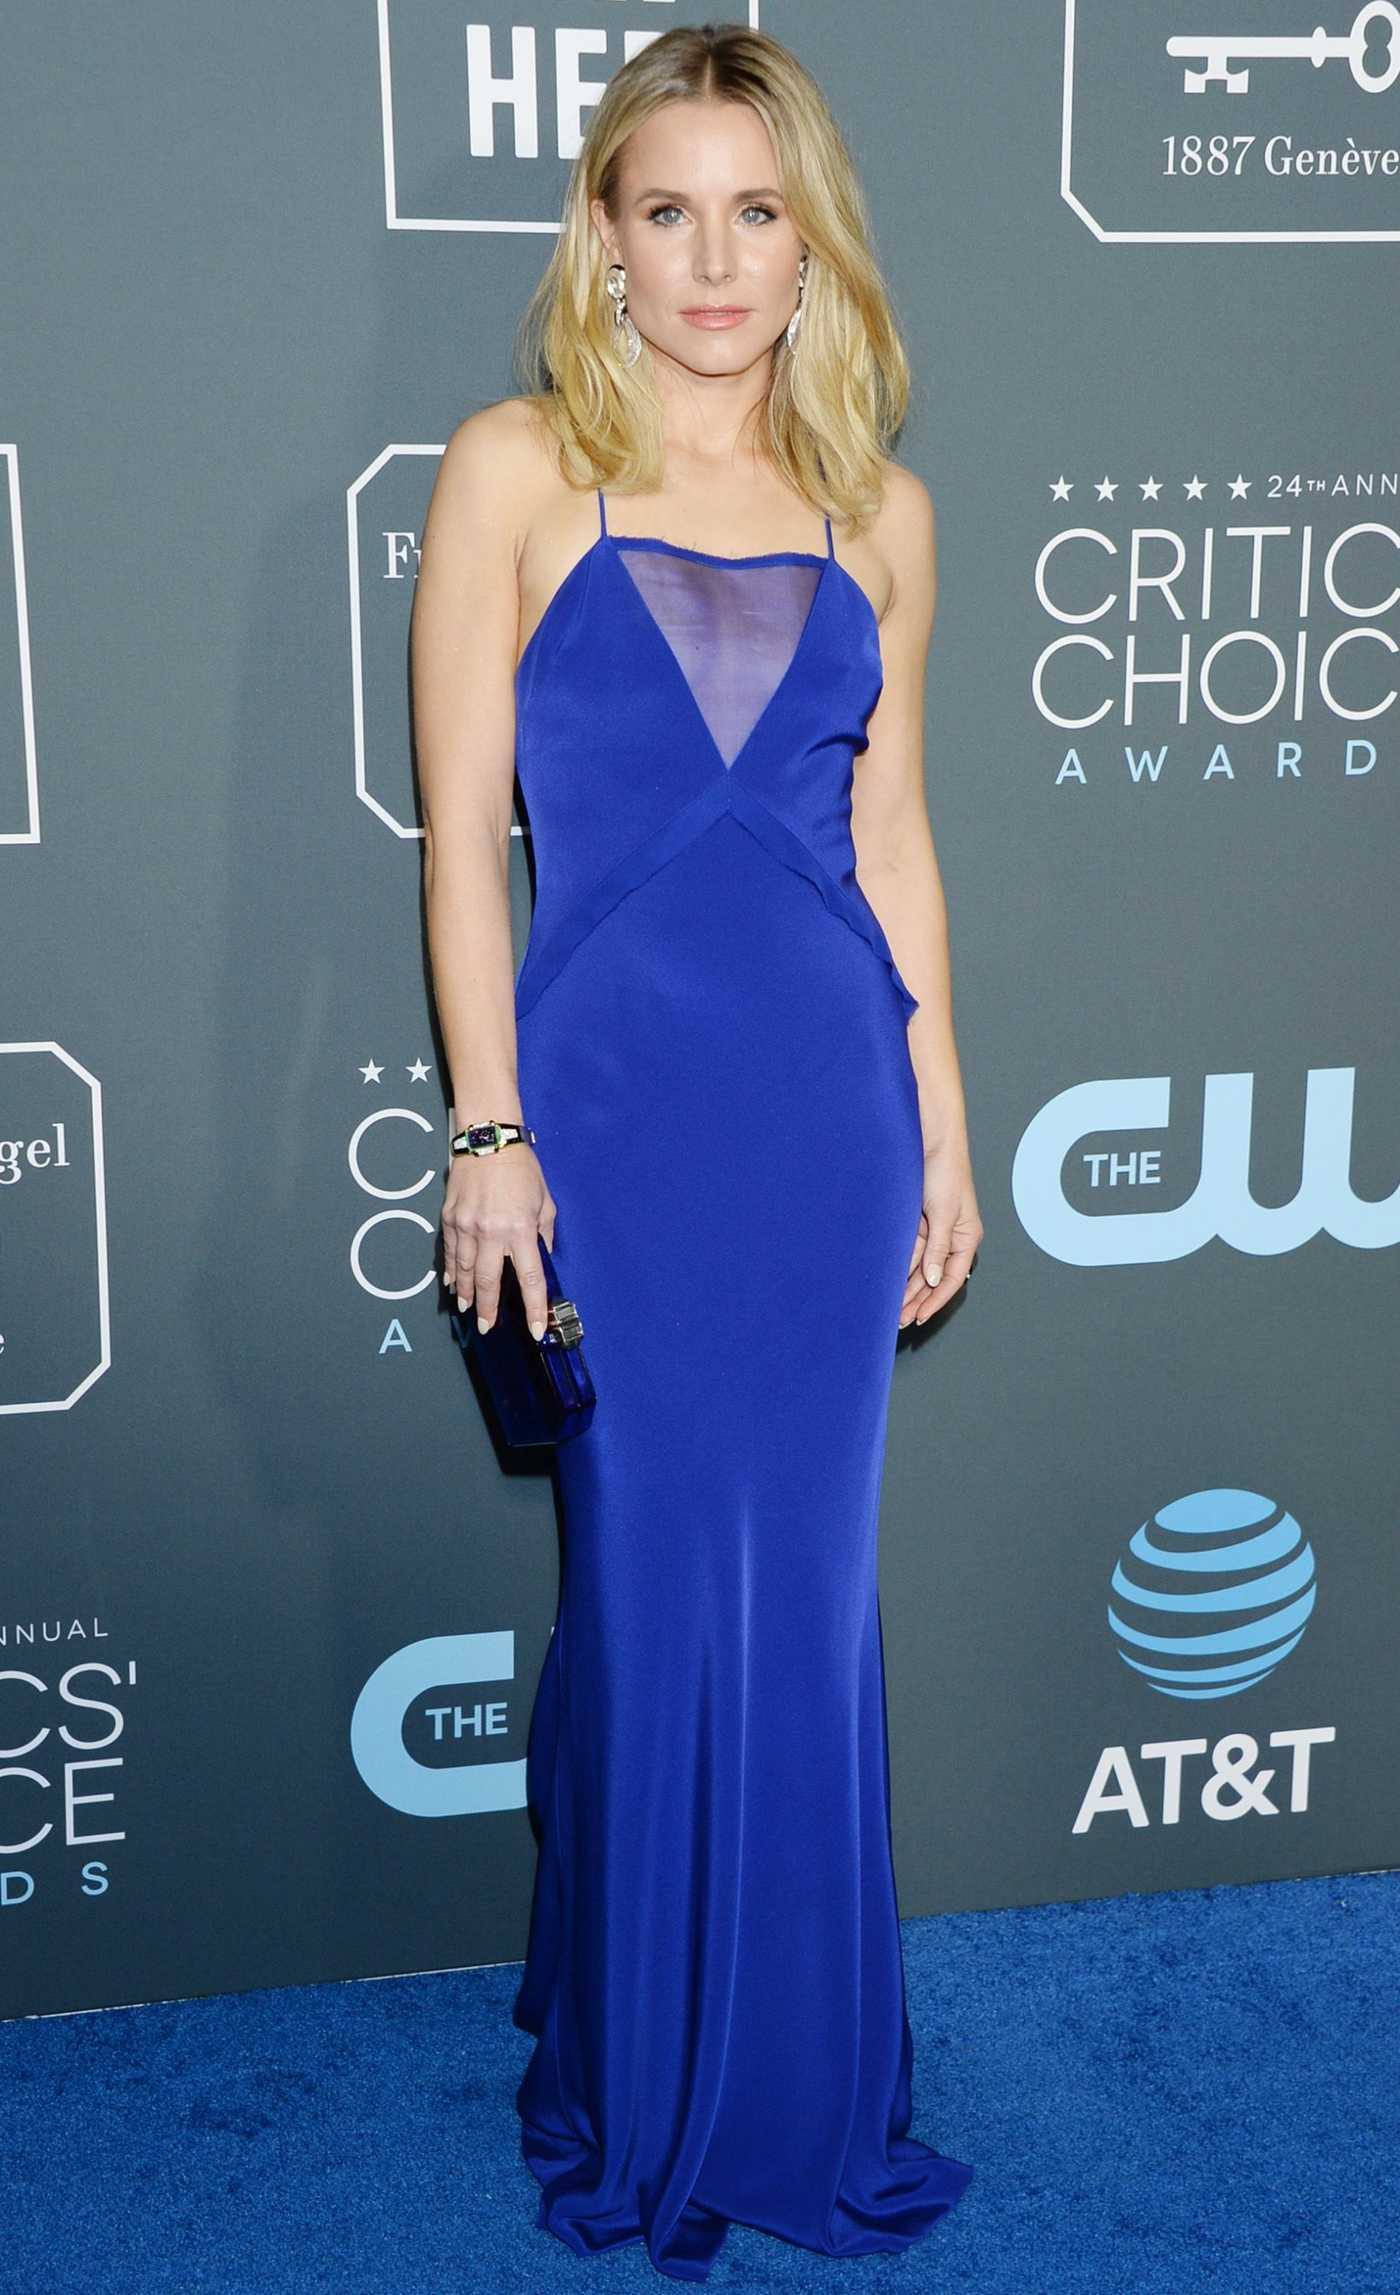 Kristen Bell Attends the 24th Annual Critics' Choice Awards at Barker Hangar in Santa Monica 01/13/2019